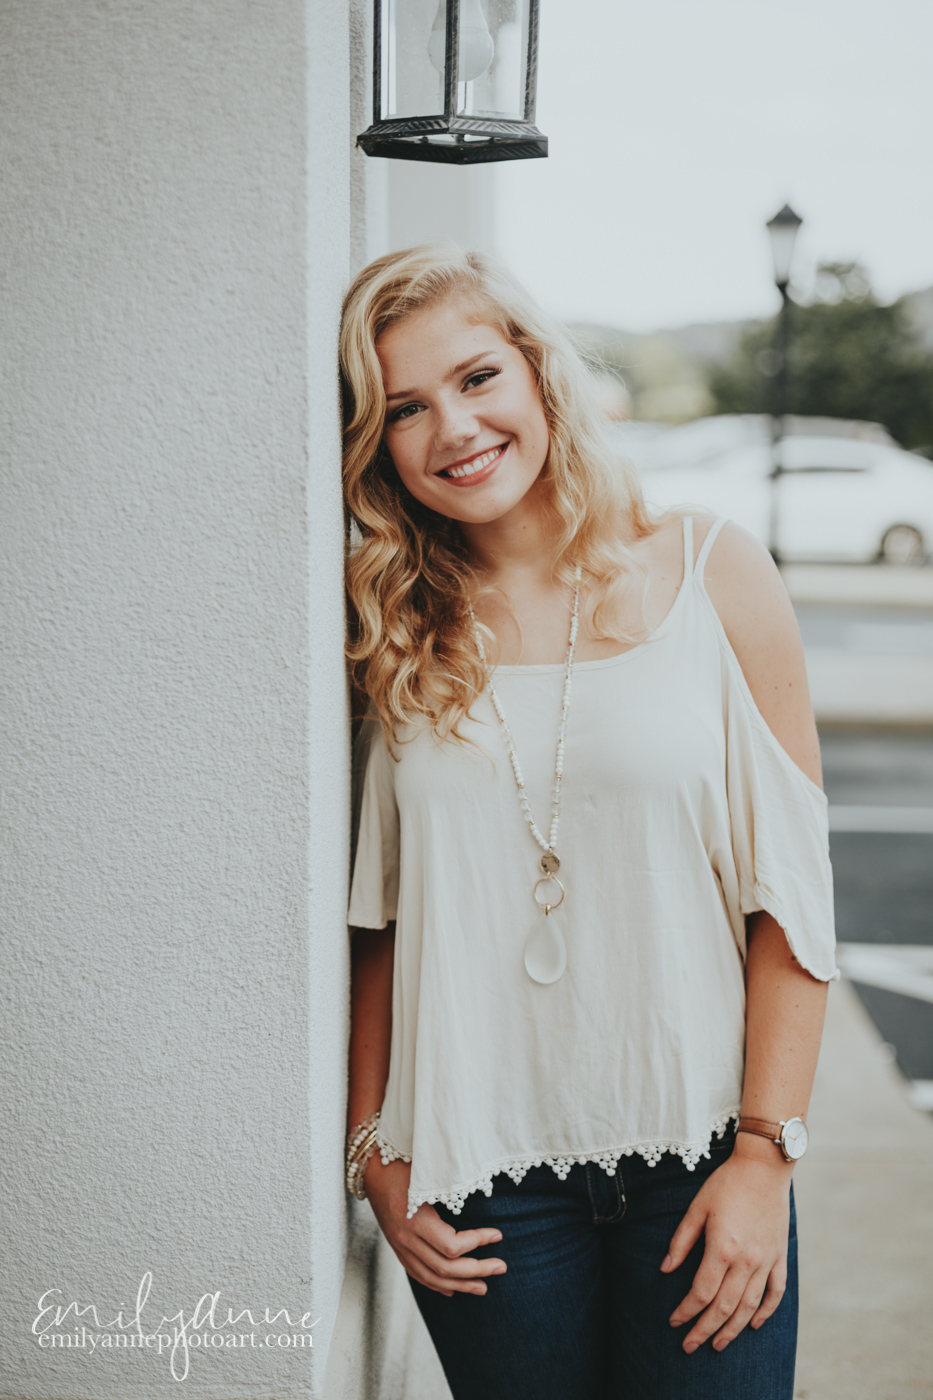 perfect smile and cute girl high end senior portrait/modeling experience Nashville TN & Franklin and Atlanta Georgia